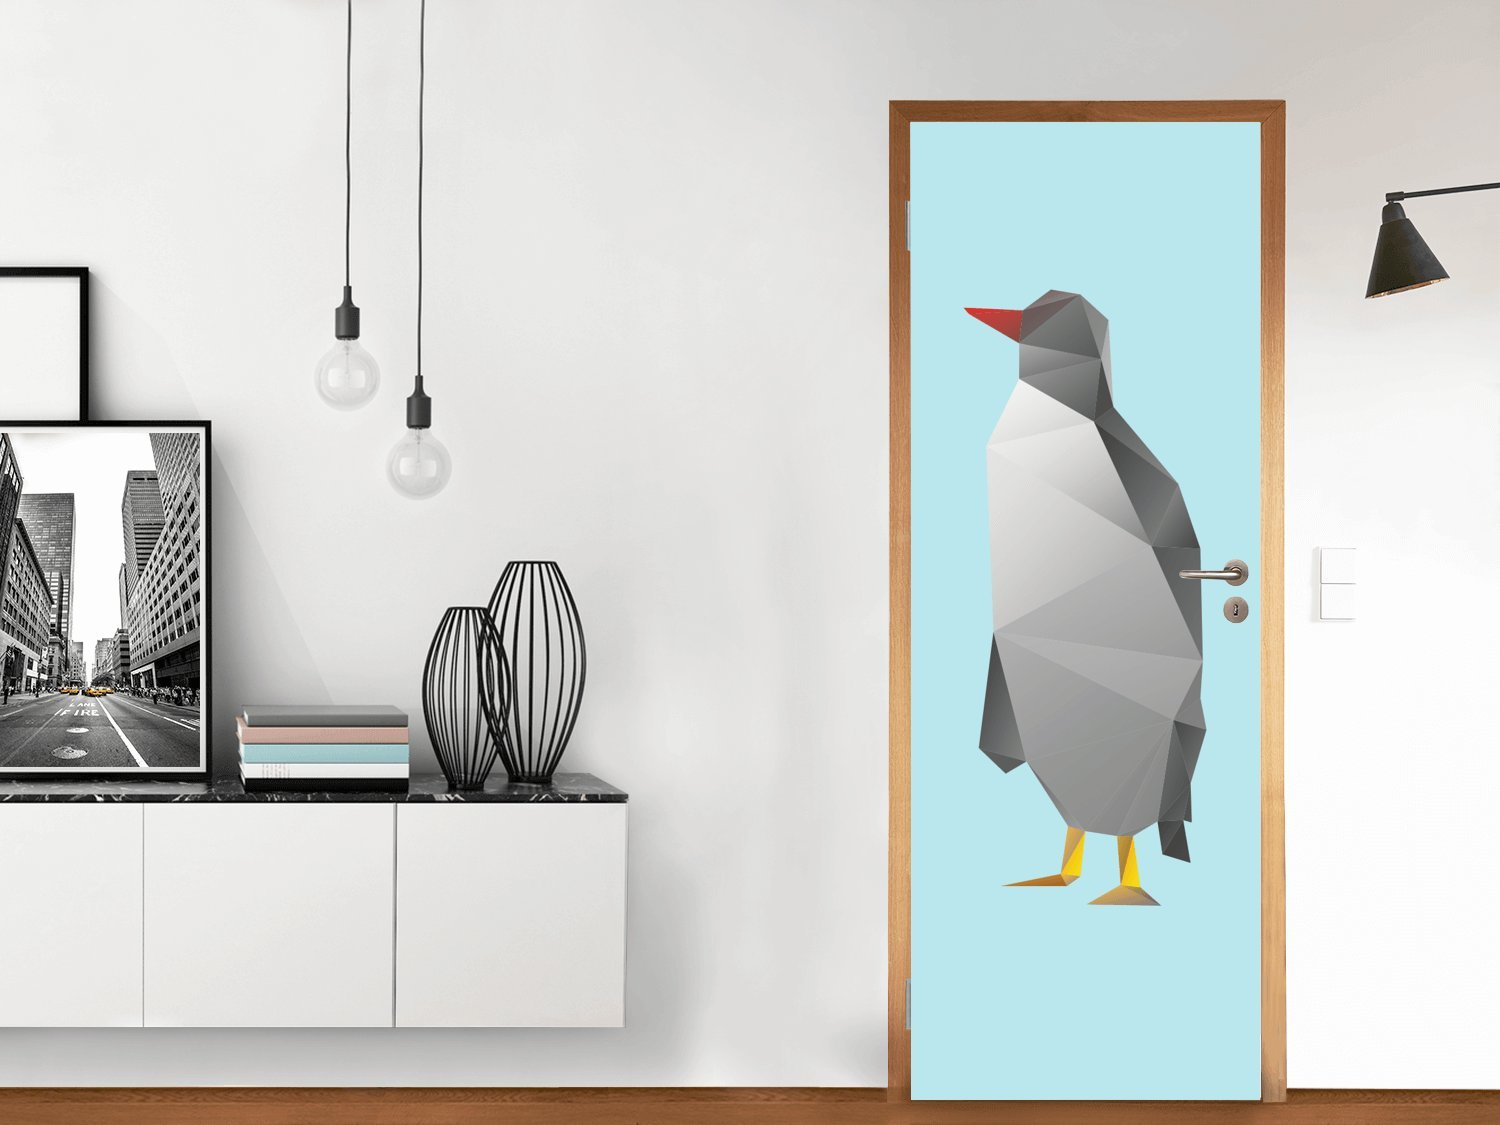 Door 71x197 cm | Tattoo Decoration Vinyl Film Wall Art - Removable - Interior Design | Various Designs creatisto GmbH